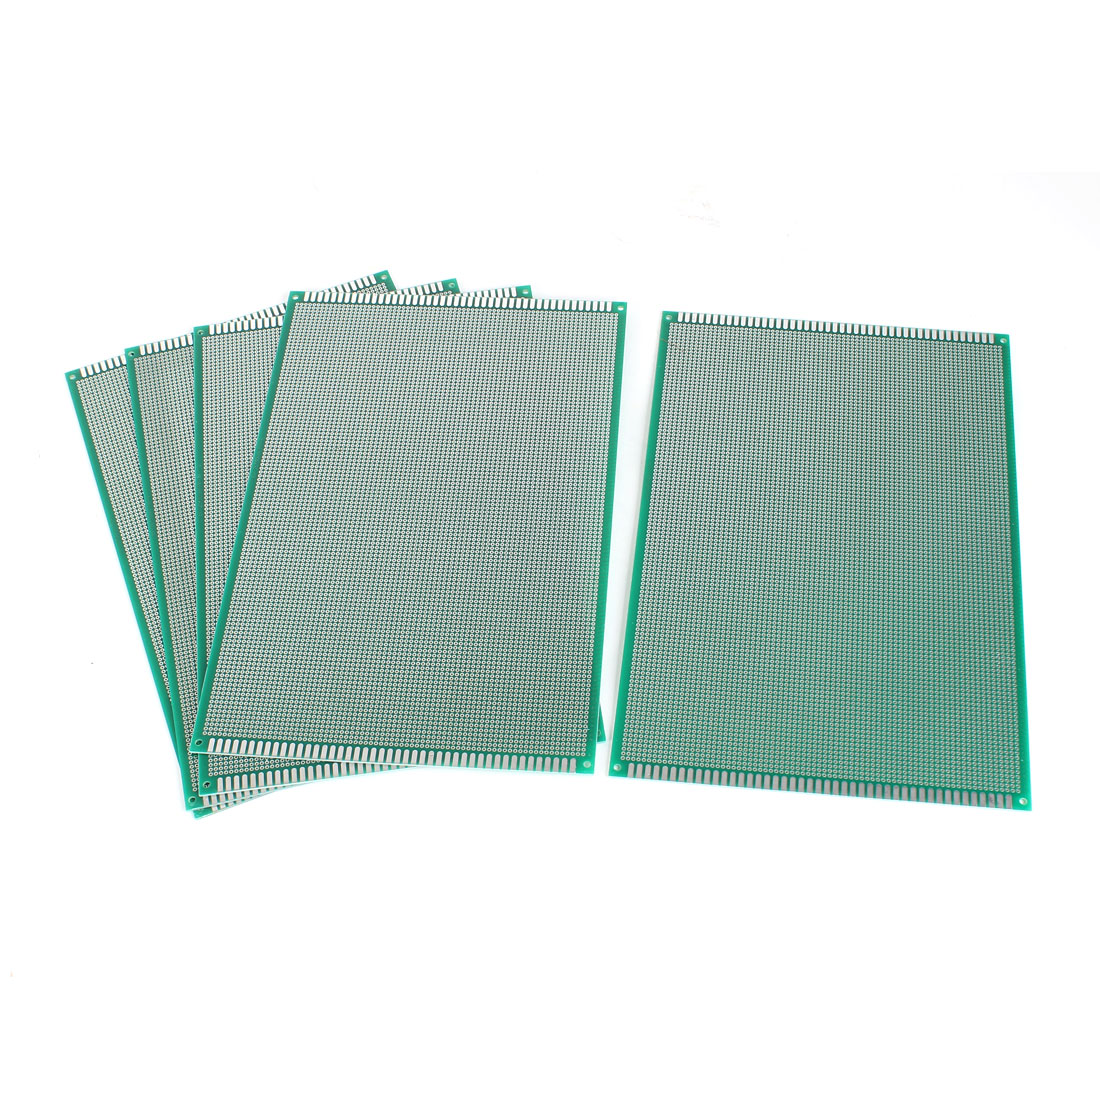 5 Pcs Single Side Prototyping Experiment Tester Matrix PCB Circuit Plate Board 20cm x 30cm